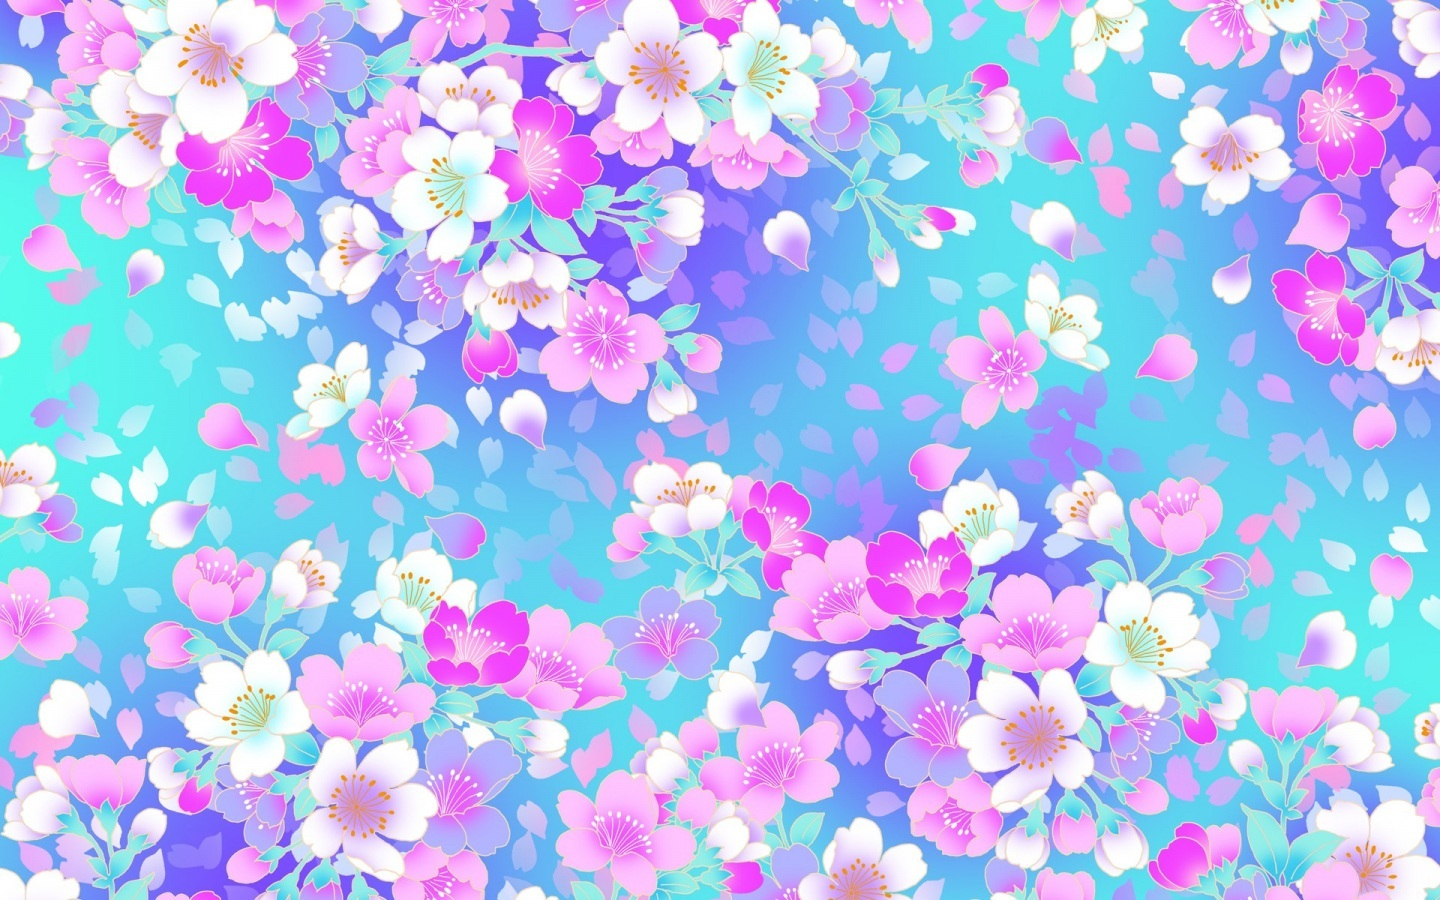 Vintage Floral Backgrounds Tumblr Gaya 1440x900